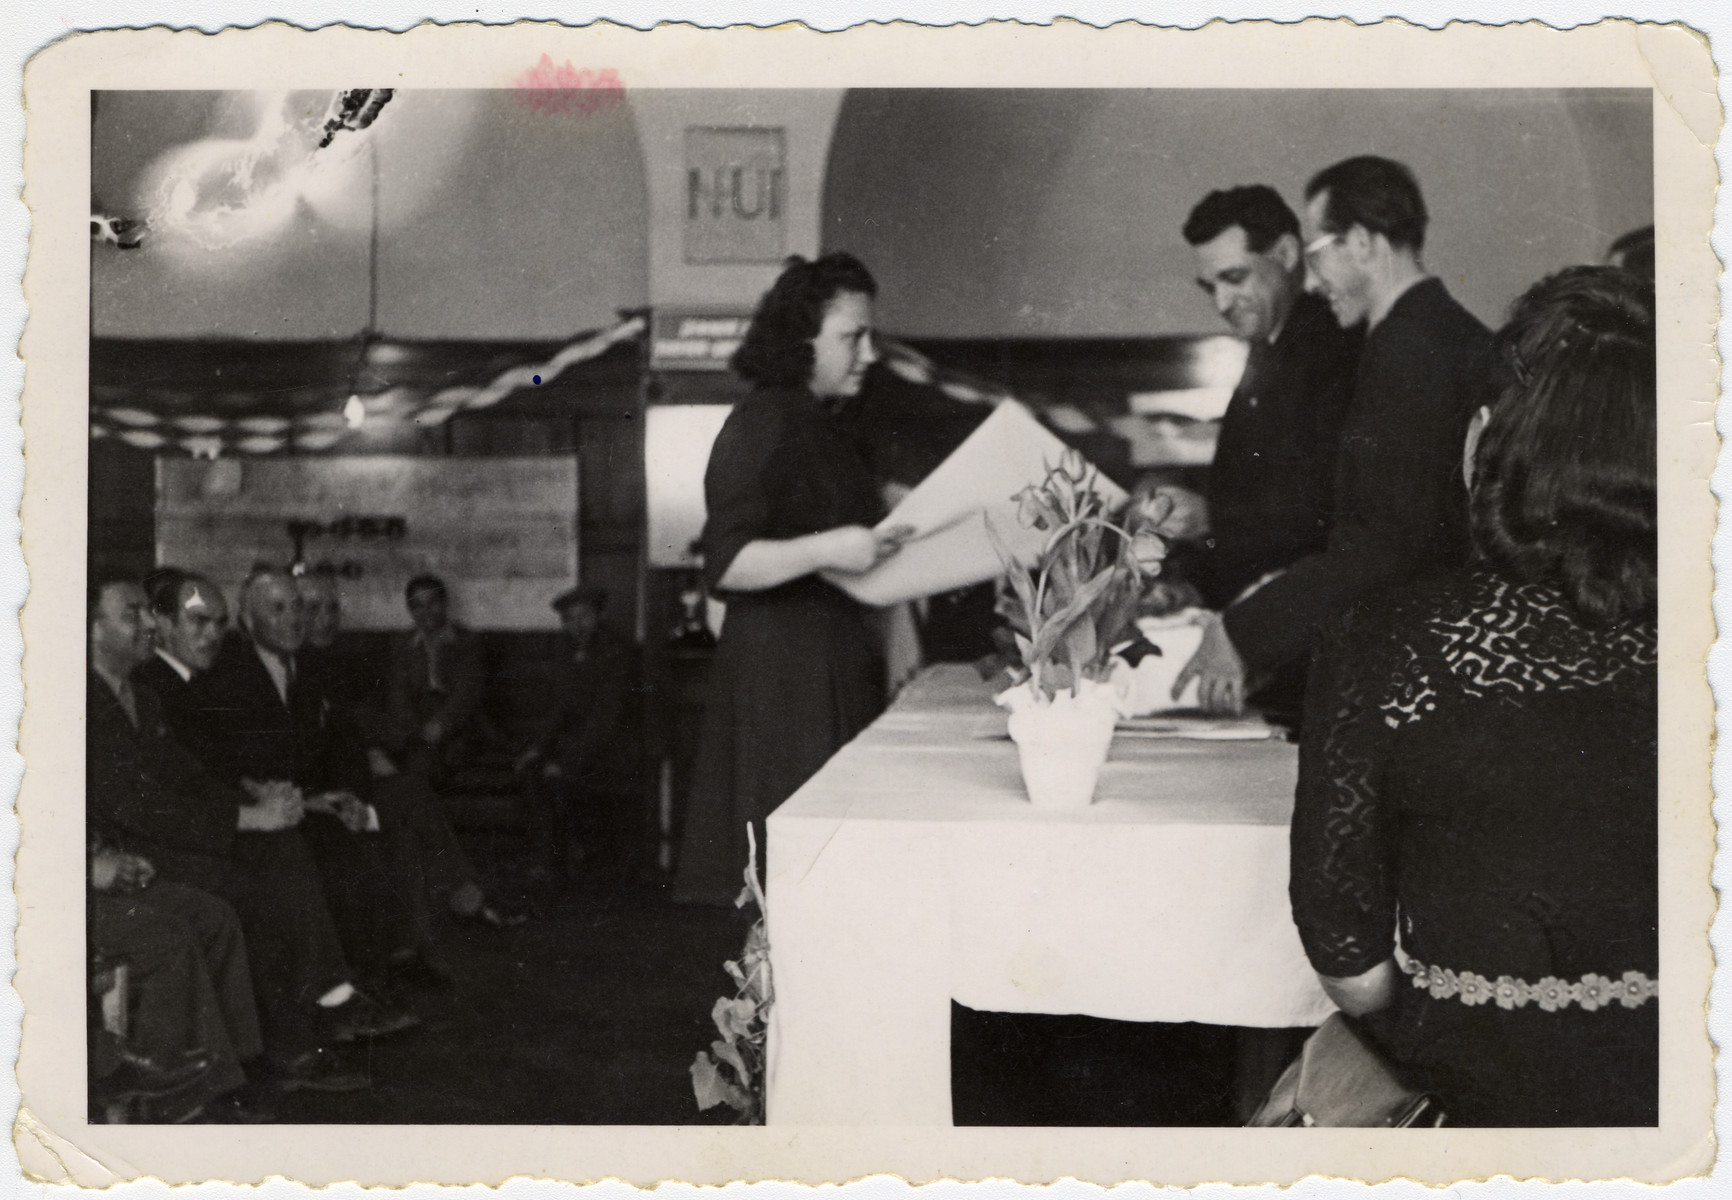 Esther Ass receives a certificate from the ORT school in the Beit Bialk displaced persons' camp.